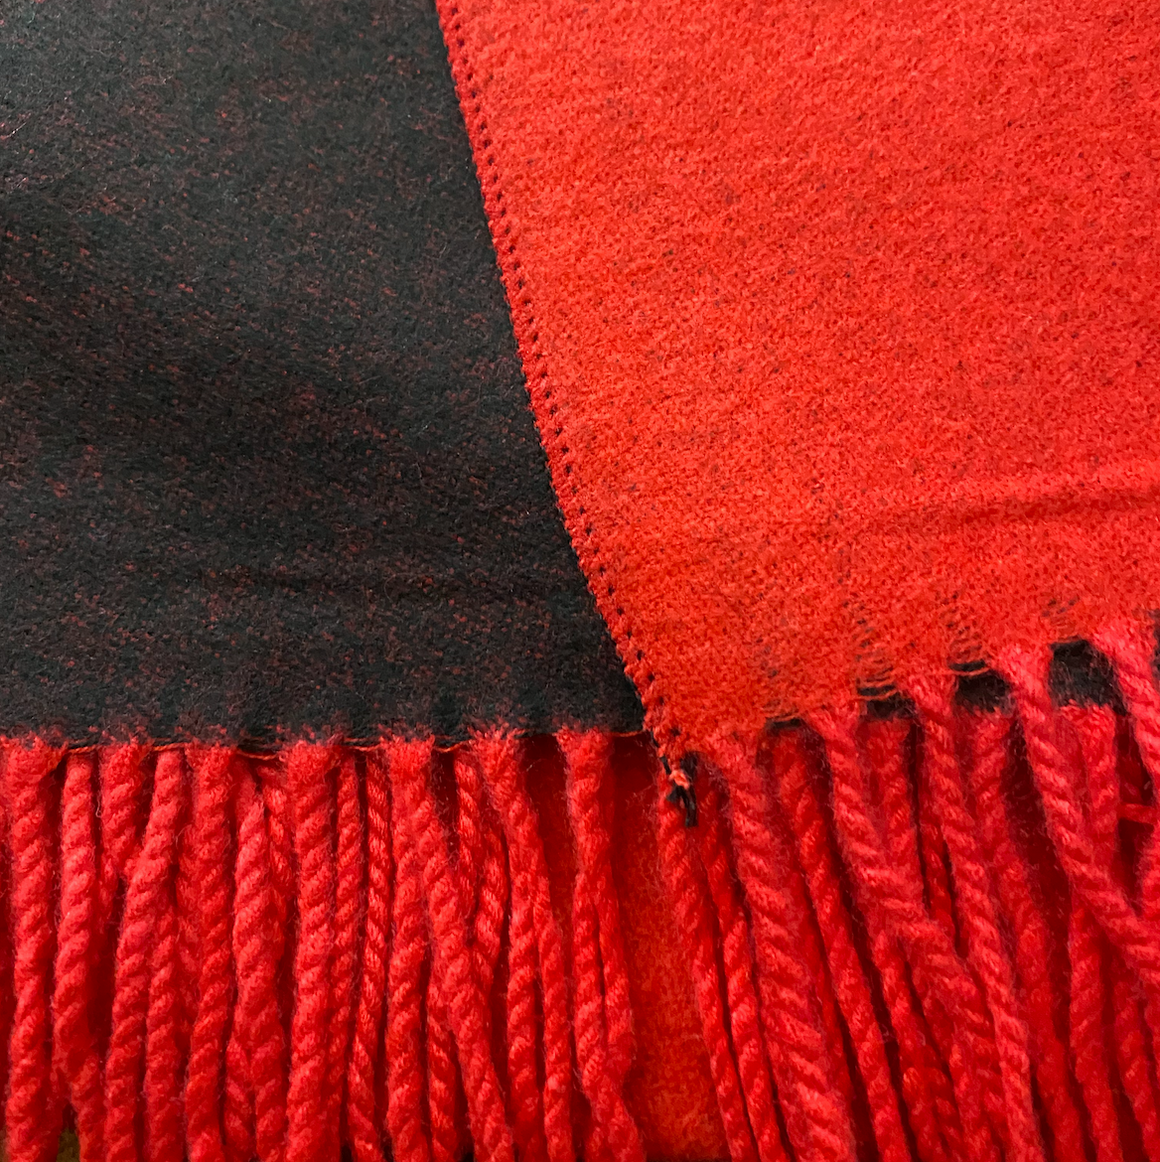 Winter Scarf - Red / Black